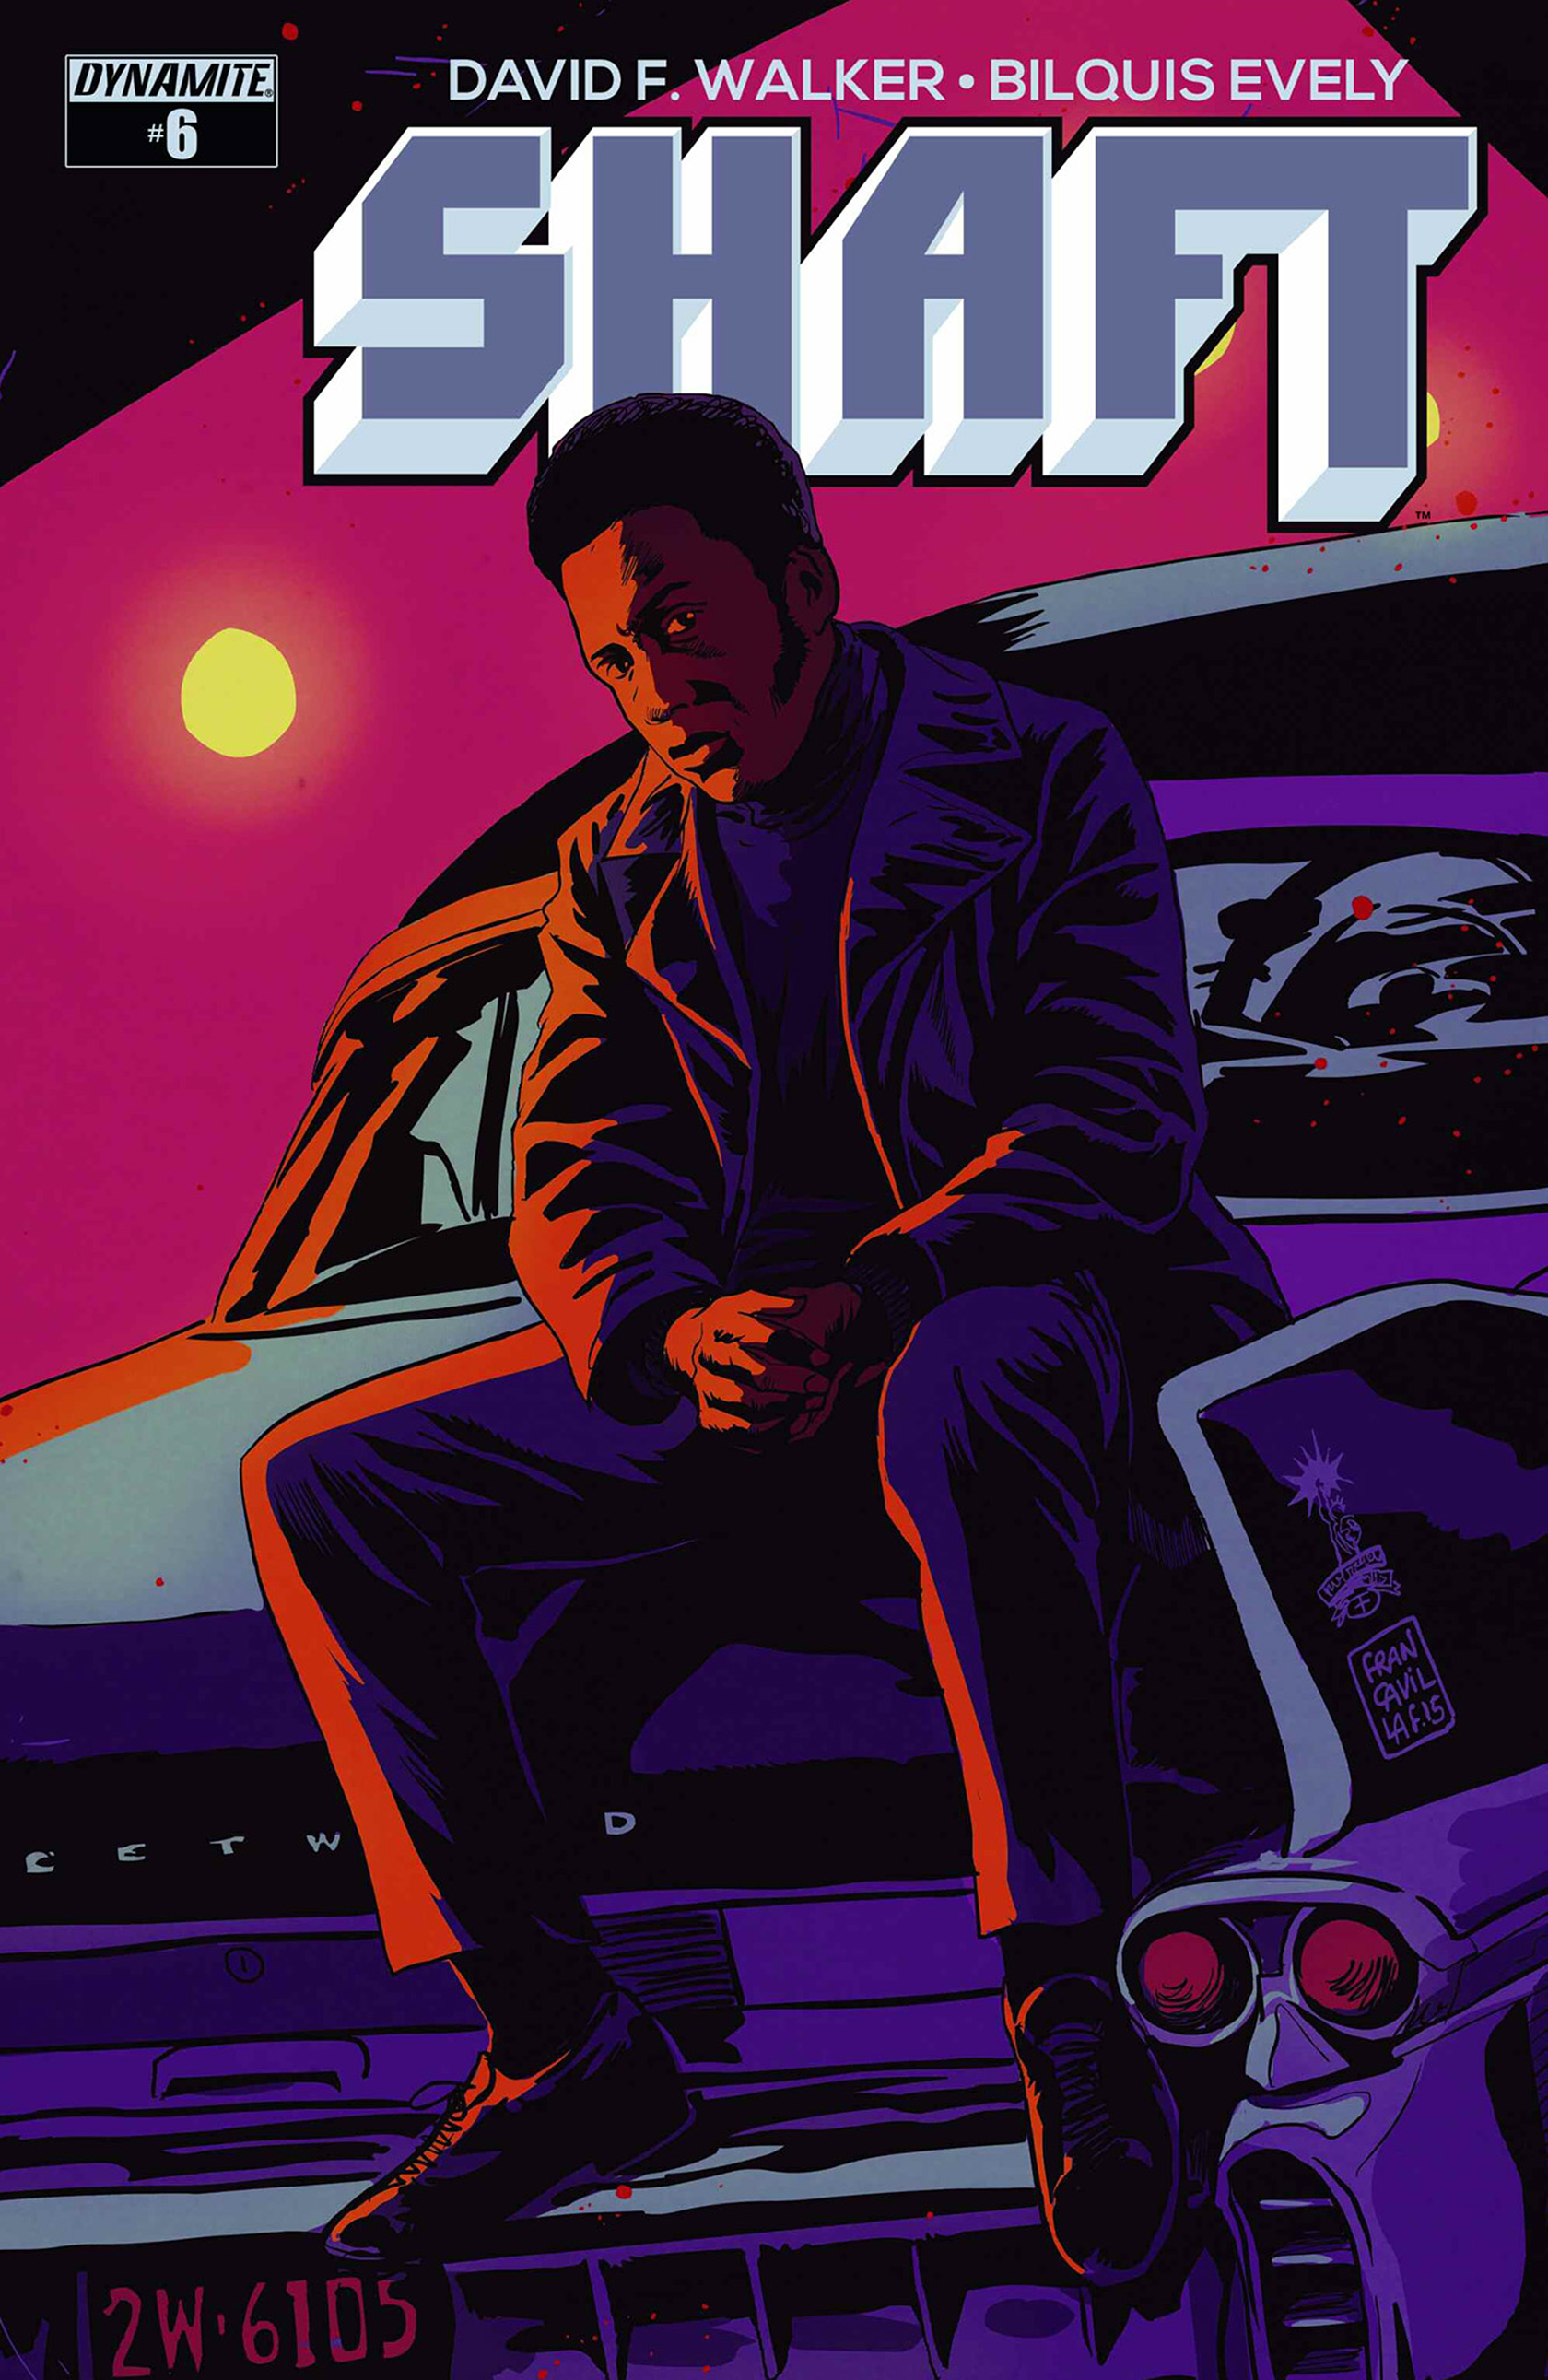 Read online Shaft comic -  Issue #6 - 2